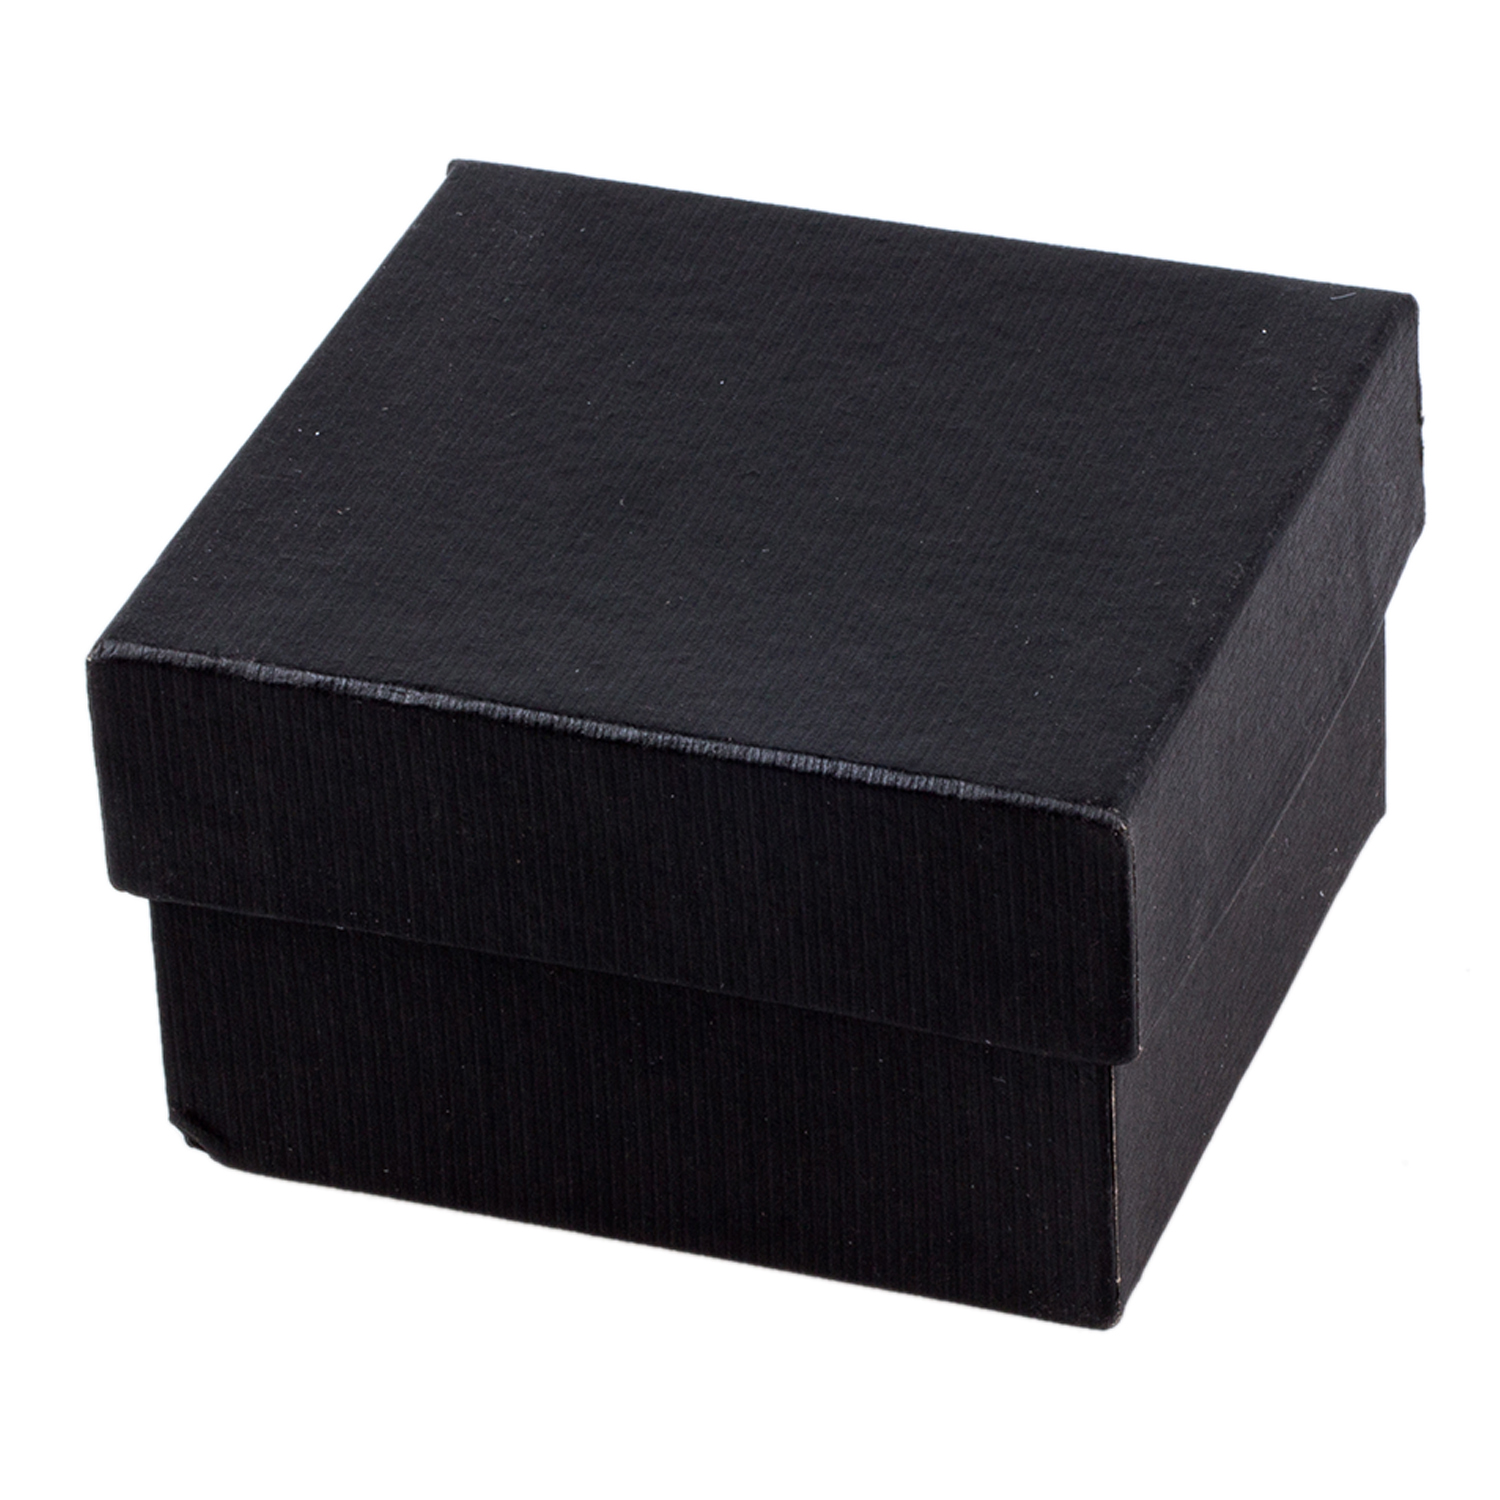 Bracelet Ring Earrings Watch Box Black Gift  Jewelry Holder Display Storage Organizer Foam pad inside